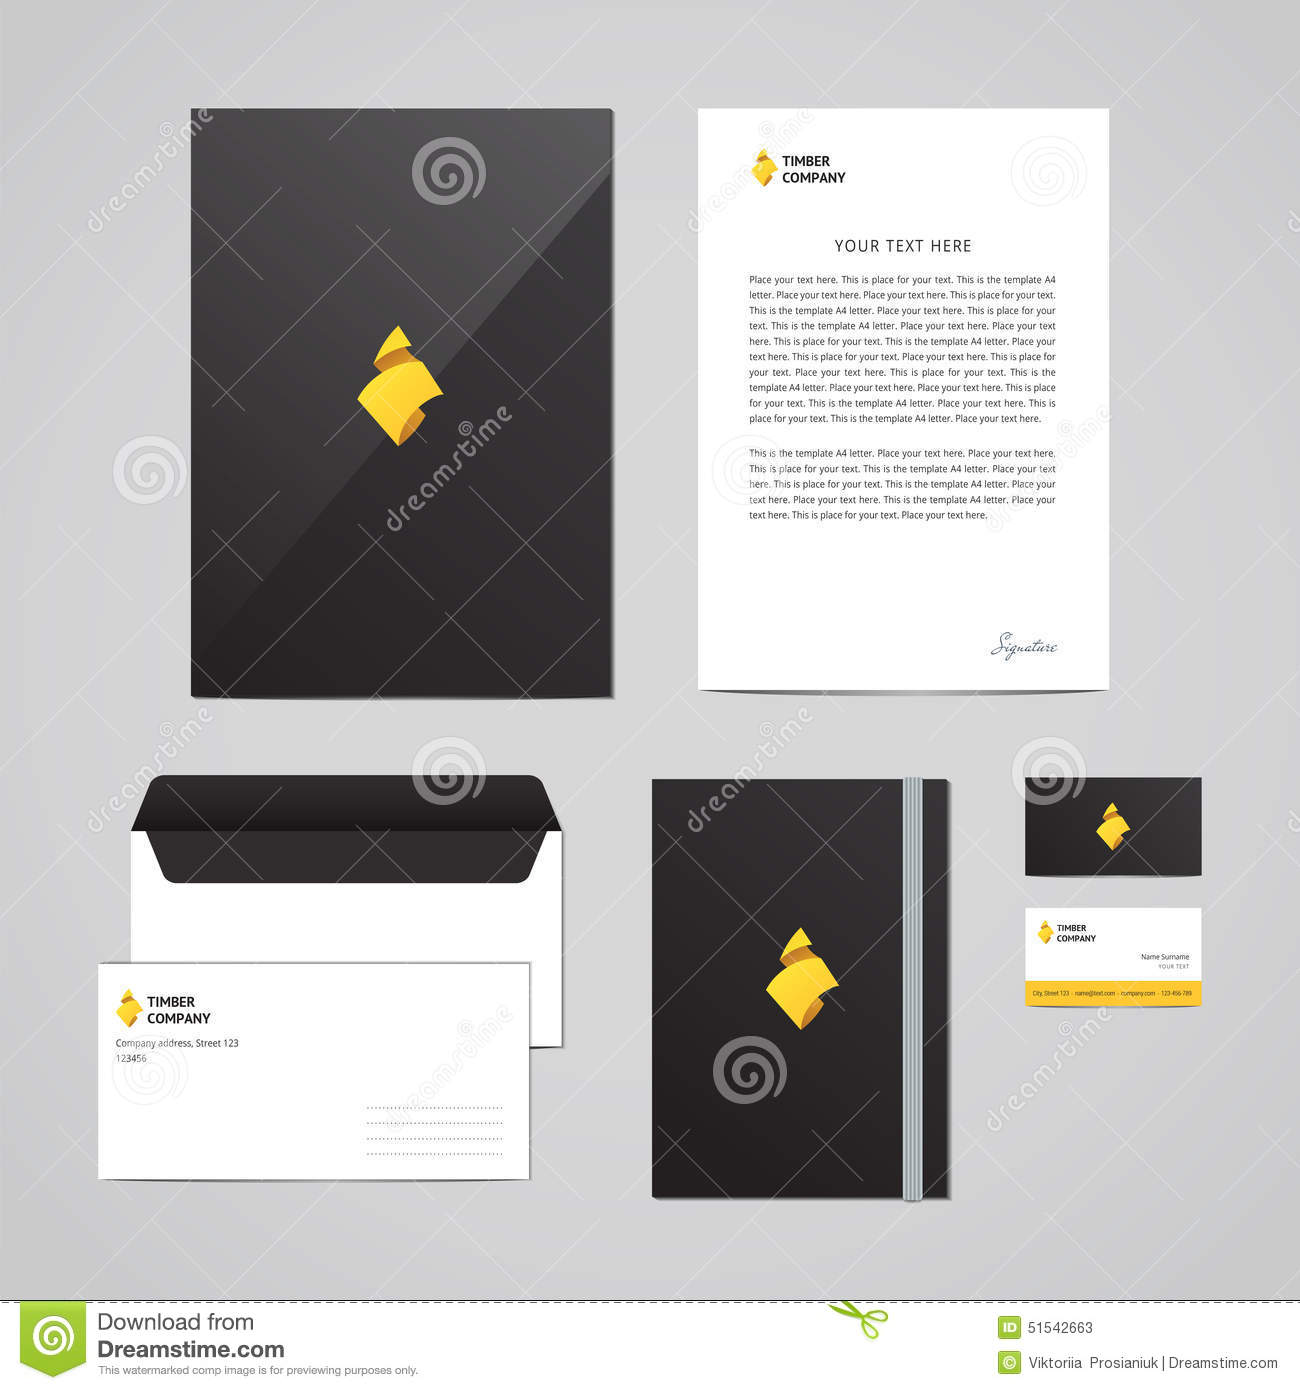 Corporate identity timber company design template perfect for your download corporate identity timber company design template perfect for your business stock vector maxwellsz